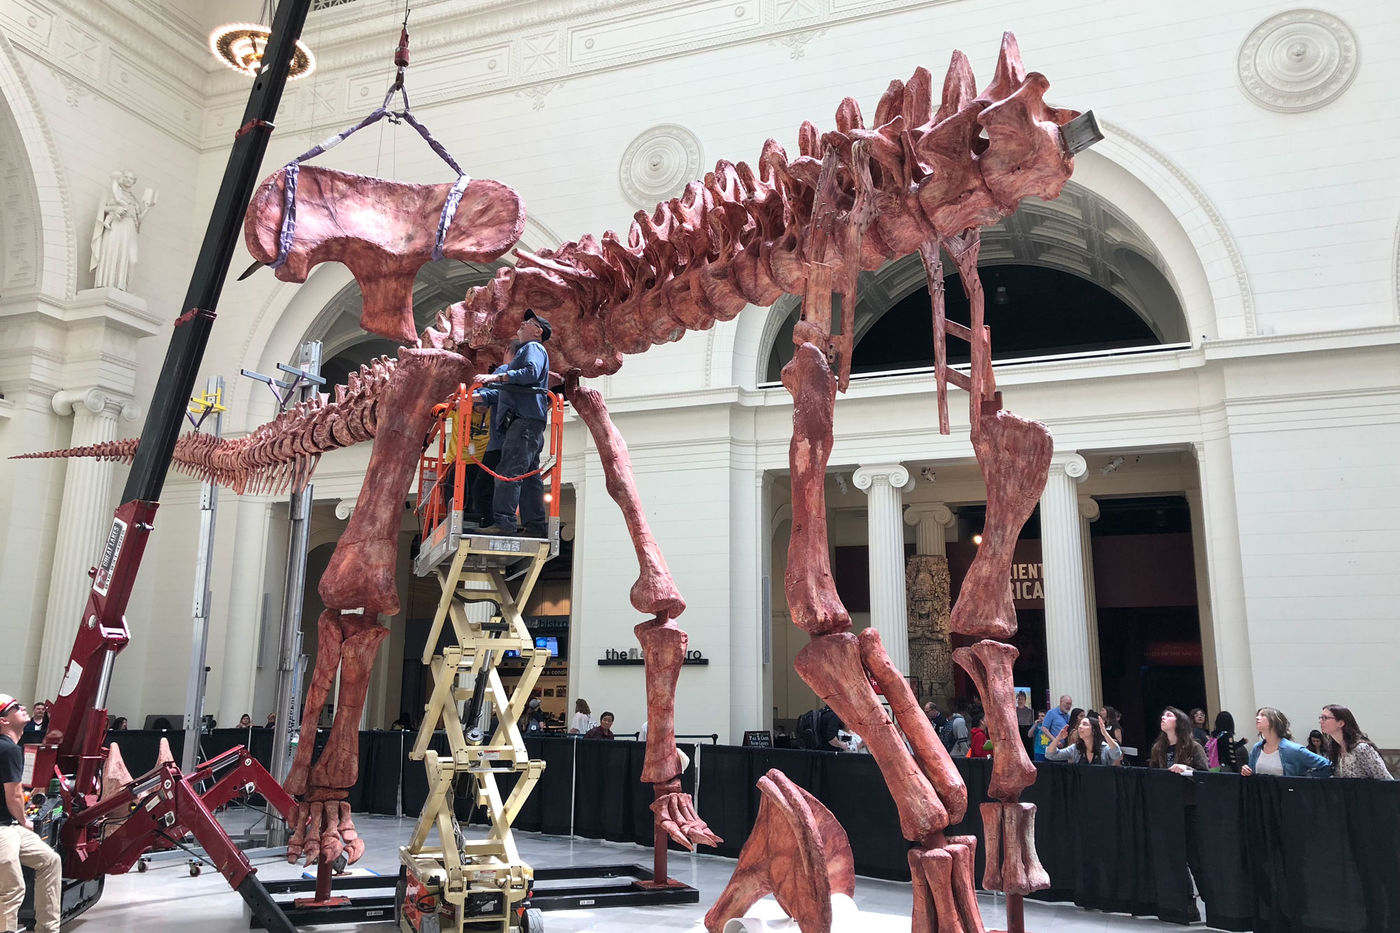 A hip bone is lowered by crane to a partially complete dinosaur skeleton. One man is operating the crane on the ground, and two or three other men are raised in a lift, waiting to move the hip bone into place. People watch from behind a black barrier surrounding the dinosaur skeleton.